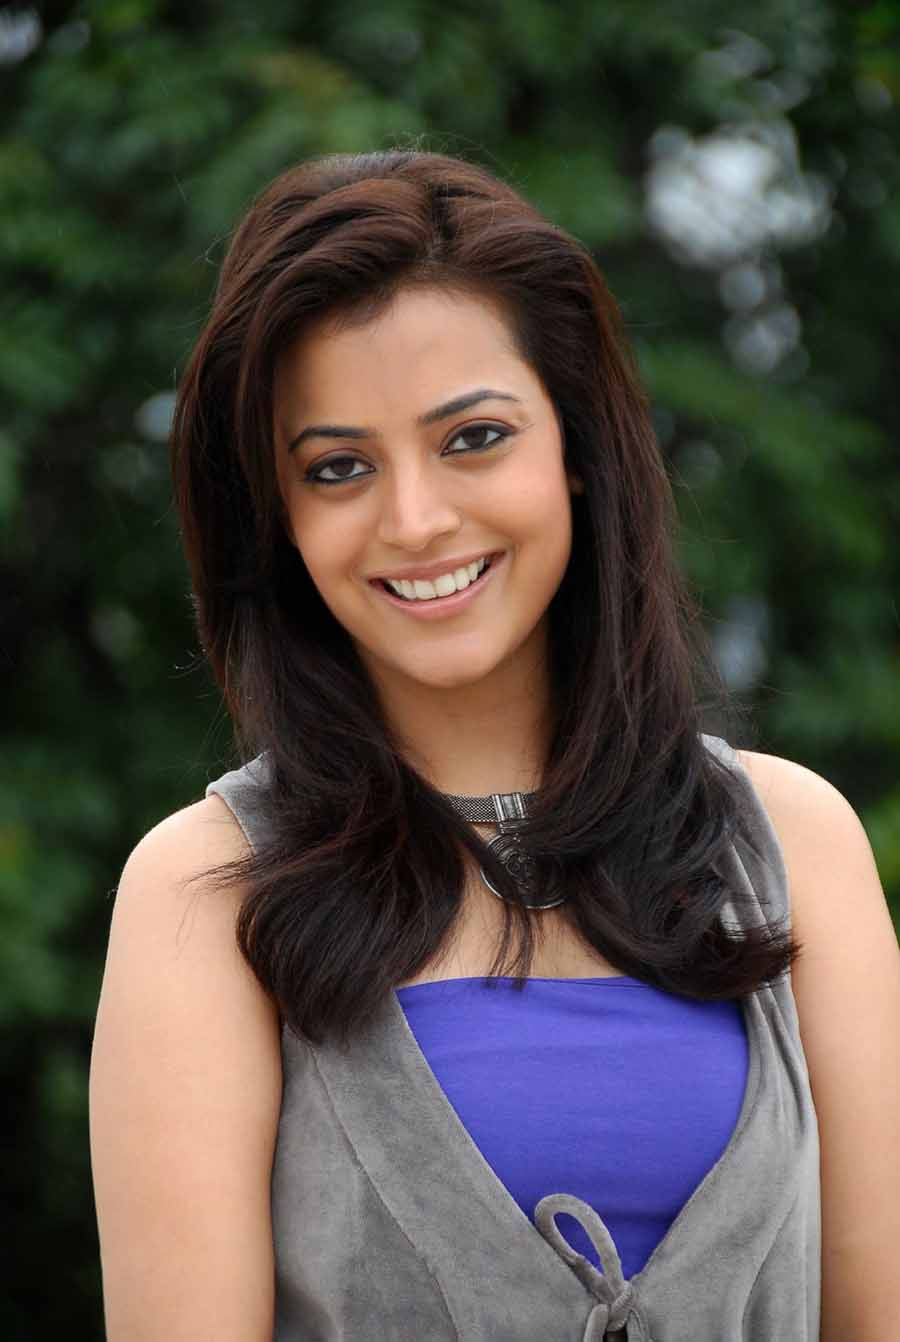 190 Nisha Agarwal Sister Of Kagal Agarwal Hot Sexy -3402